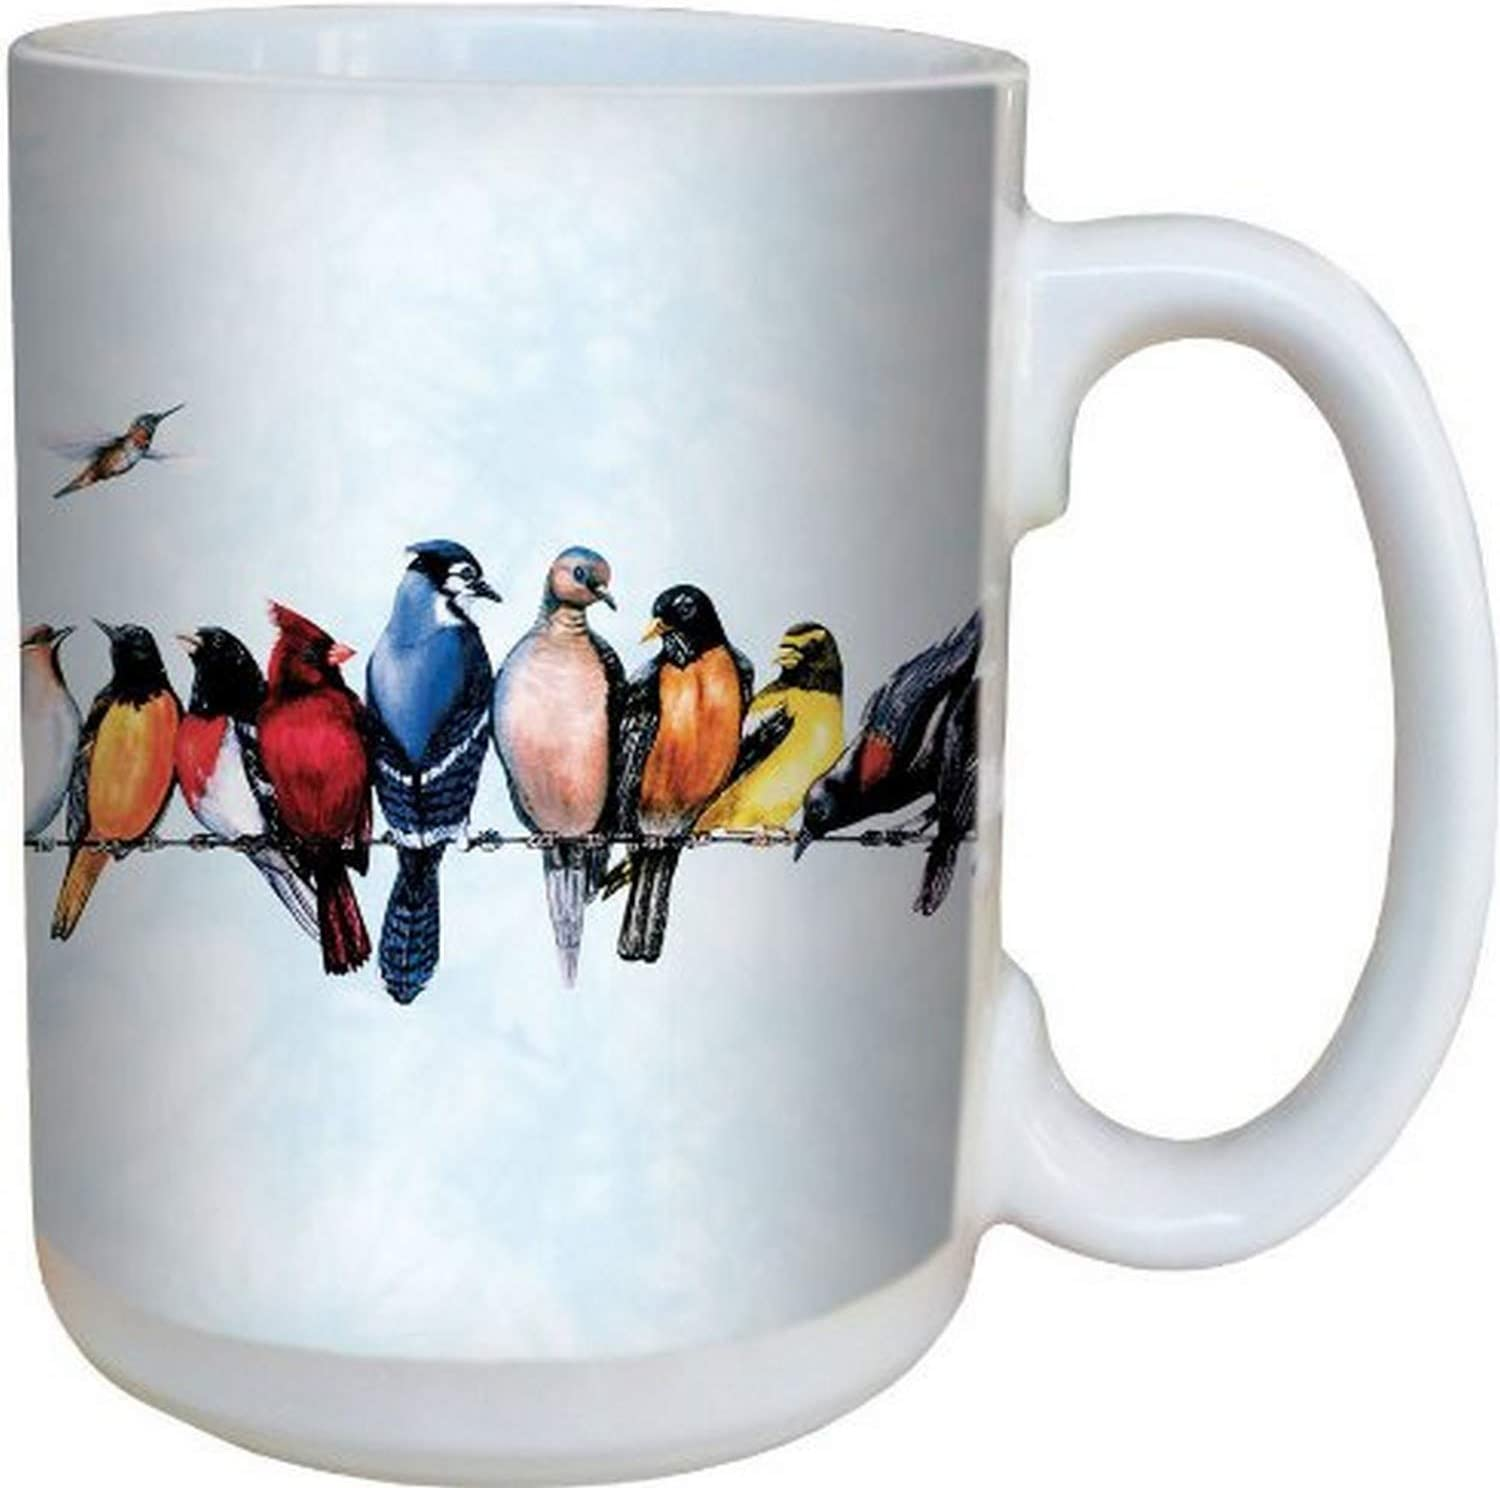 Chorus Line Bird Coffee Mug - Large 15-Ounce Ceramic Cup, Full-Size Handle - Gift for Nature and Garden Lovers - Tree-Free Greetings